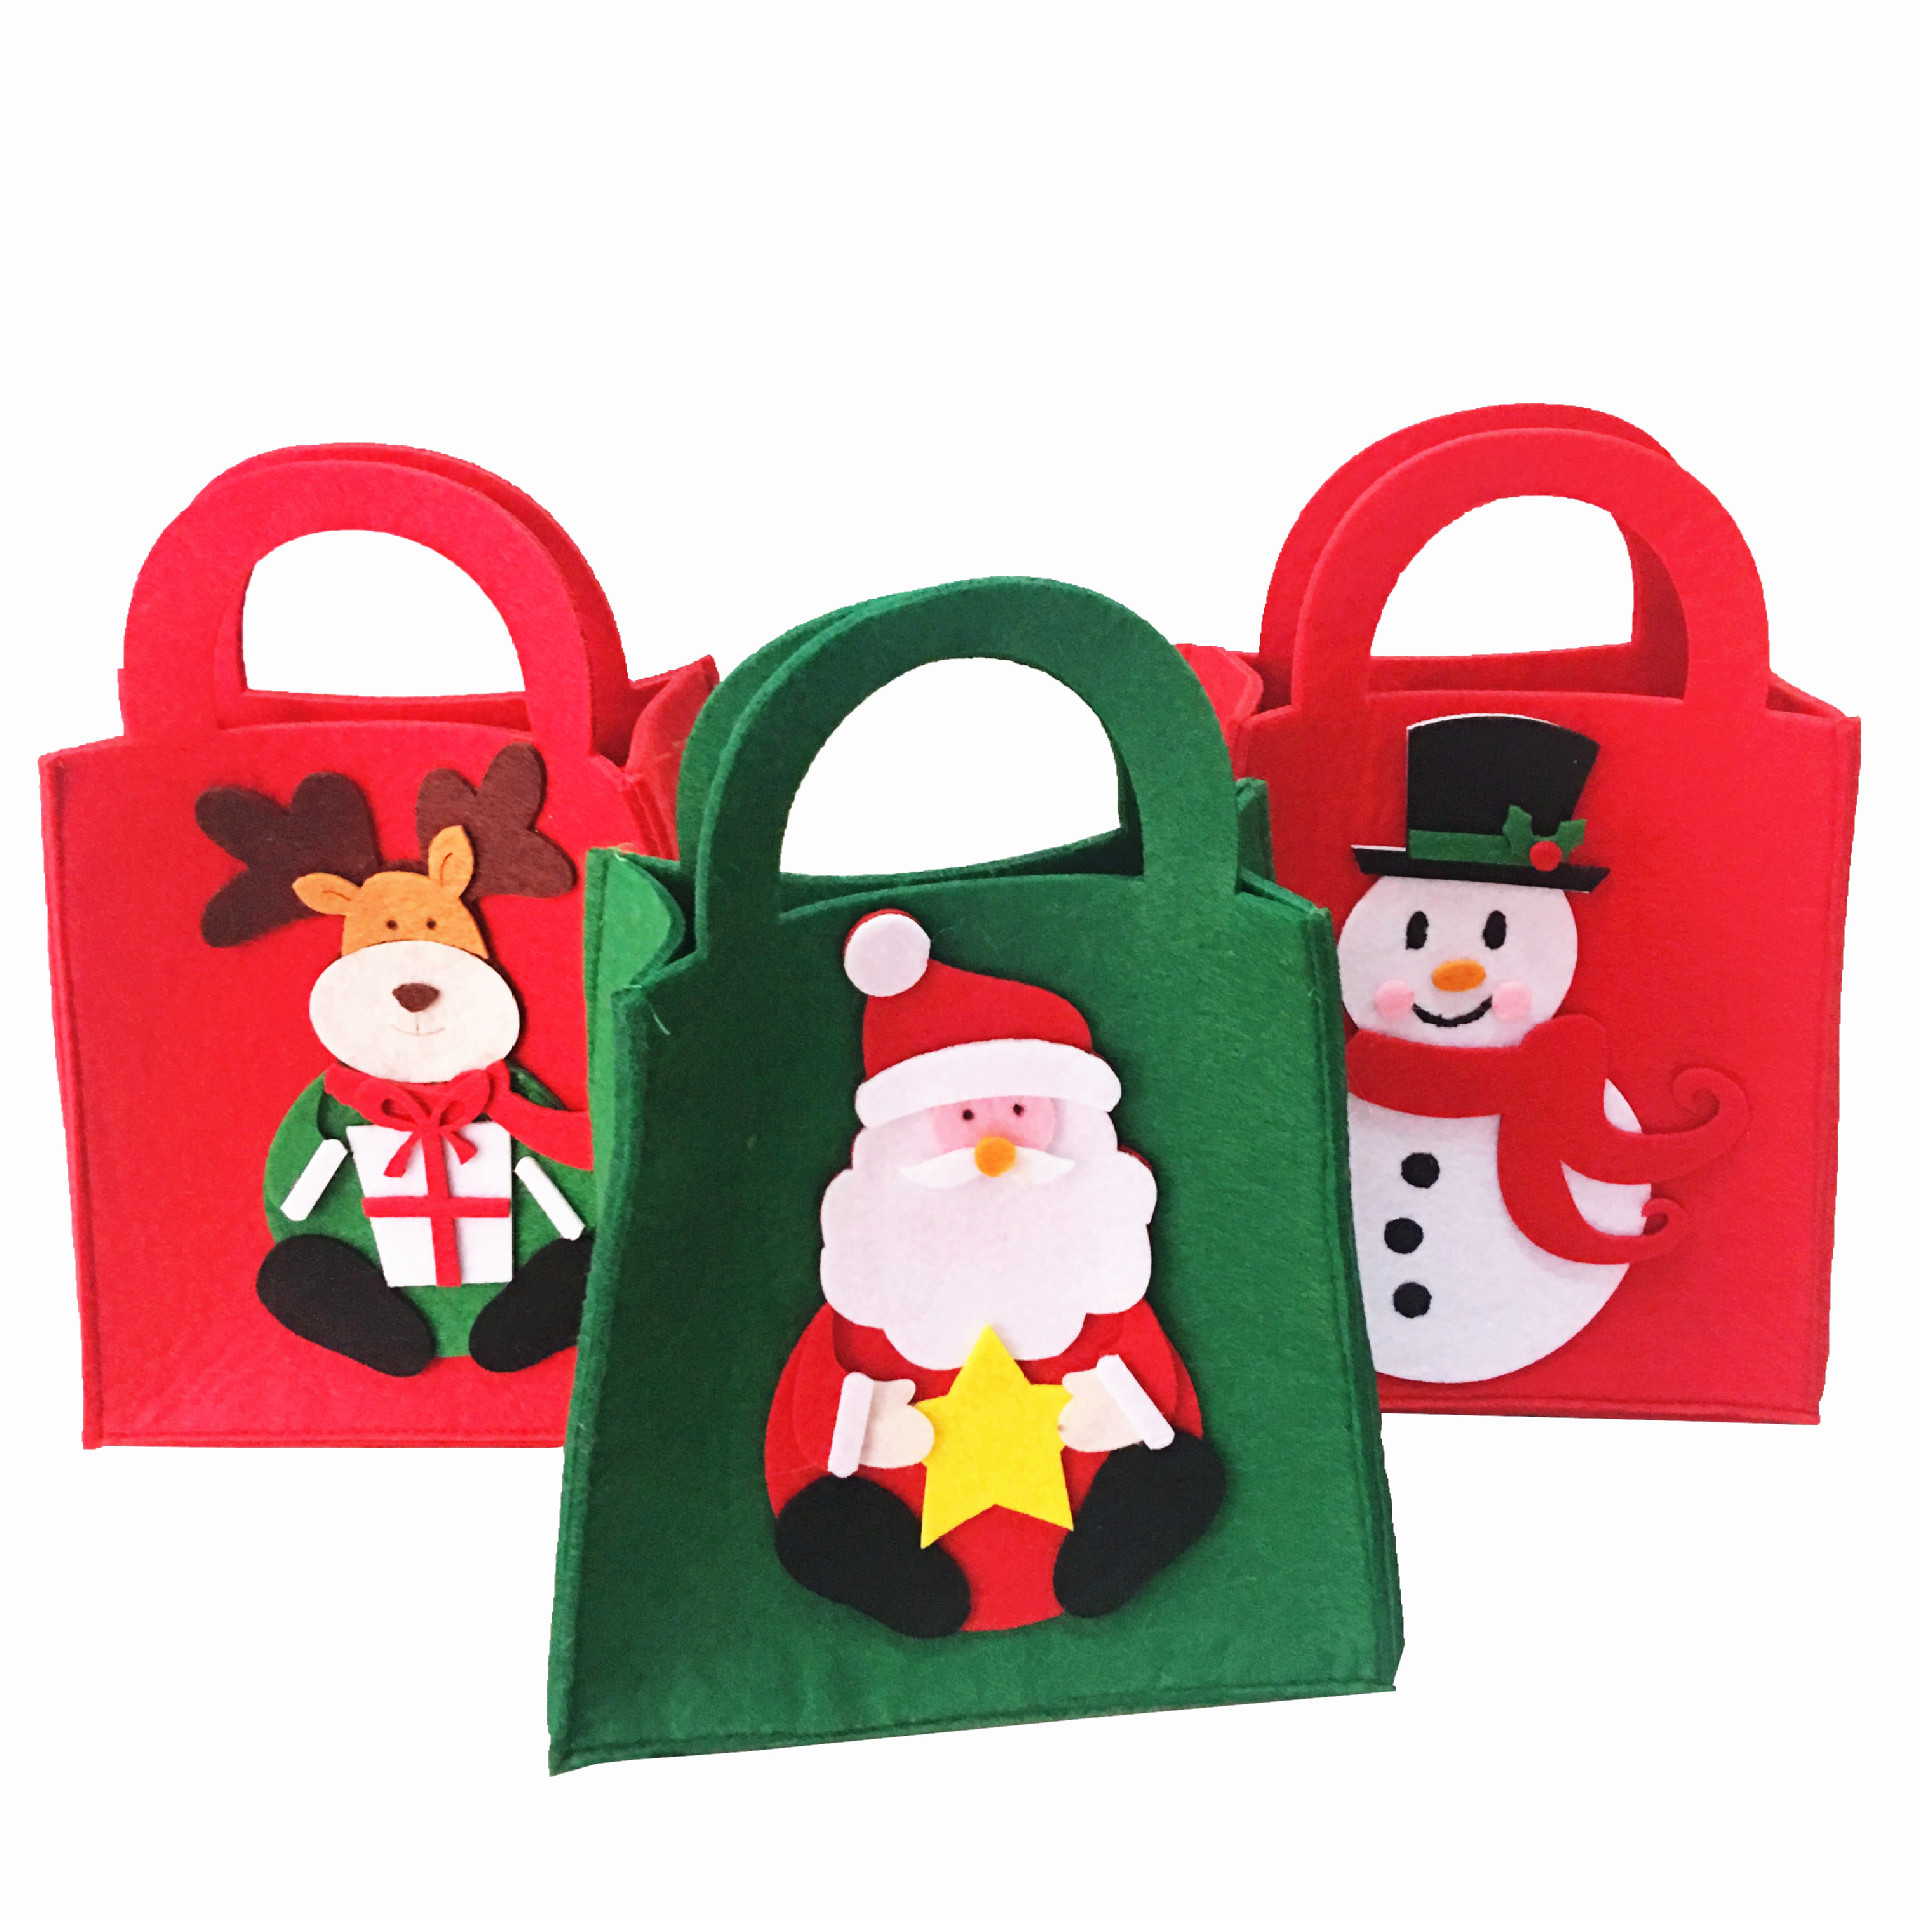 1pc Christmas Candy Bag Santa Claus Snowman Elk Hand Bags XMAS Decor Holiday Gift Bags Wholesale New Year